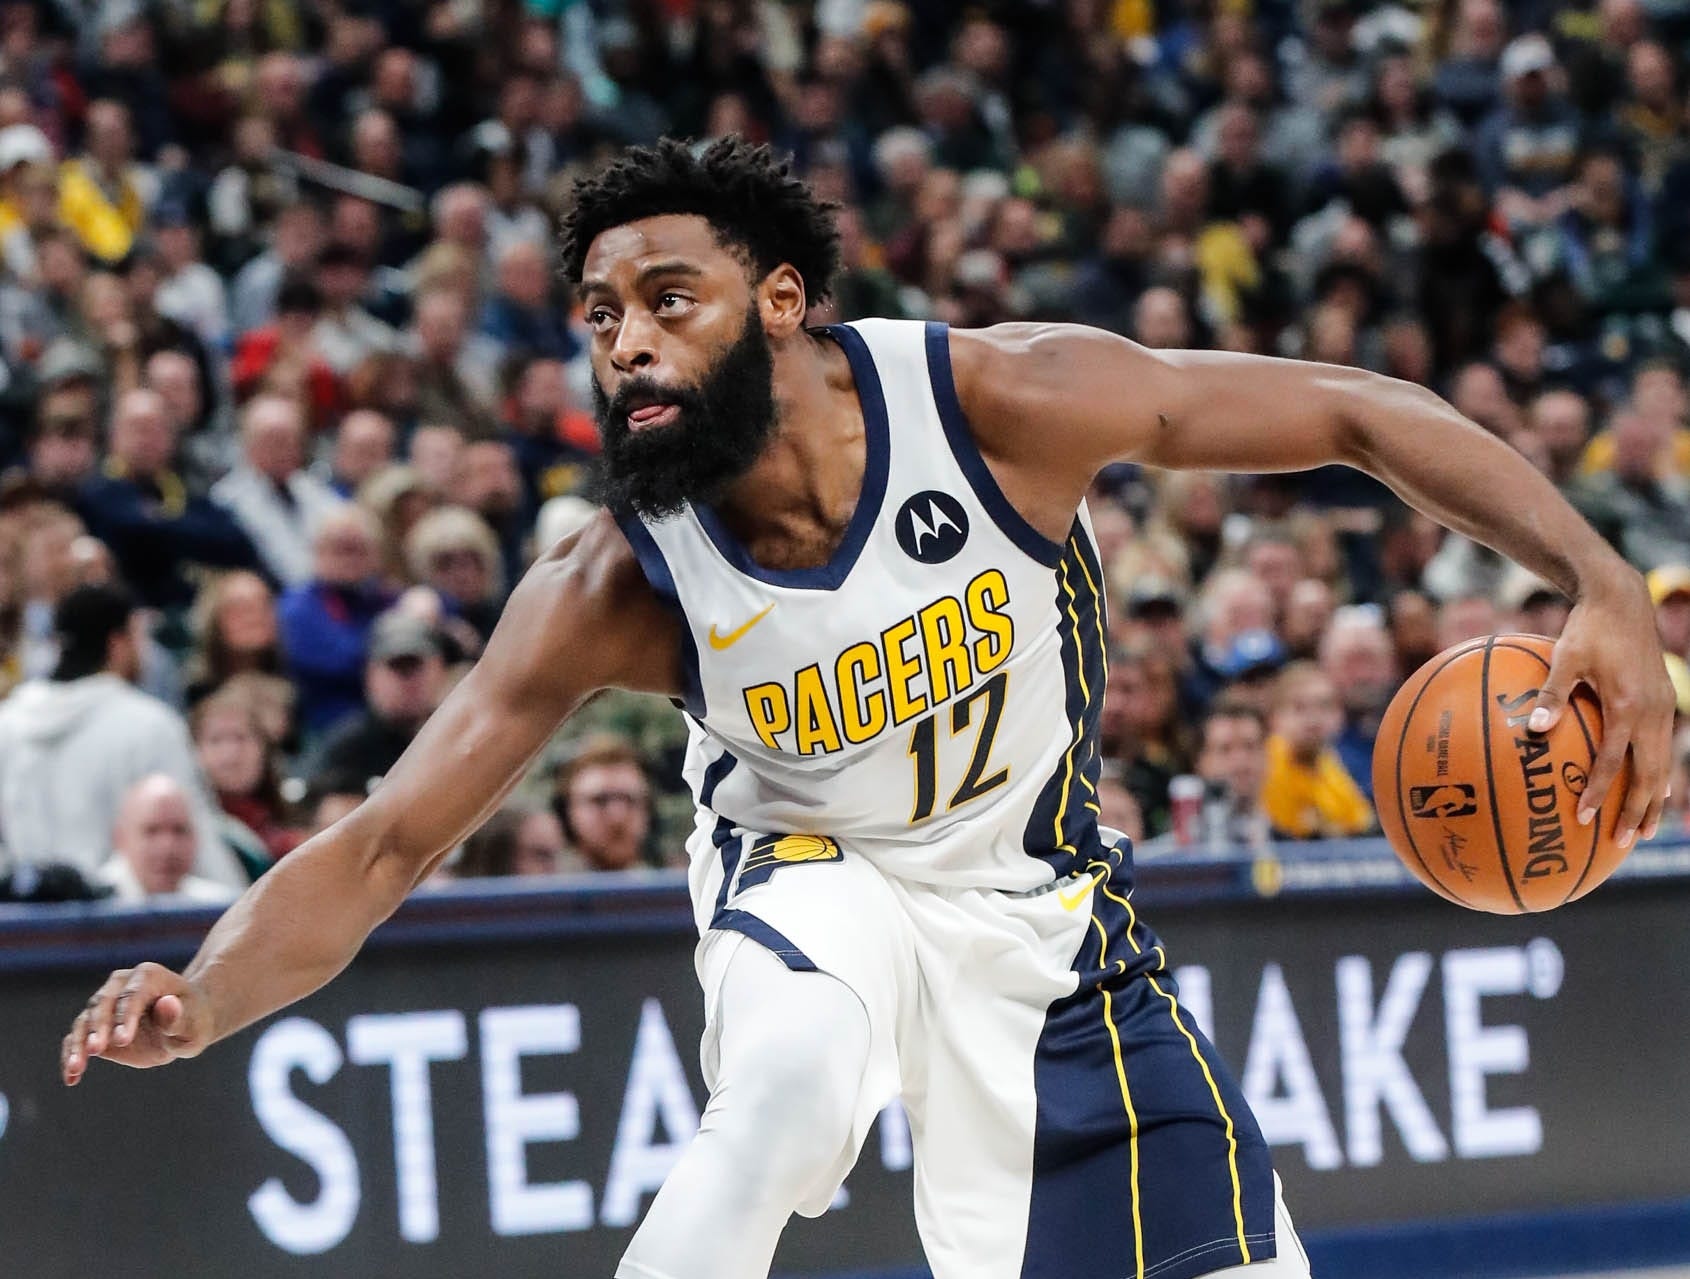 Indiana Pacer's guard Tyreke Evans (12) fakes out an opposing player during a game between the Indiana Pacers and the Detroit Pistons at at Bankers Life Fieldhouse in Indianapolis on Friday, Dec. 28, 2018.